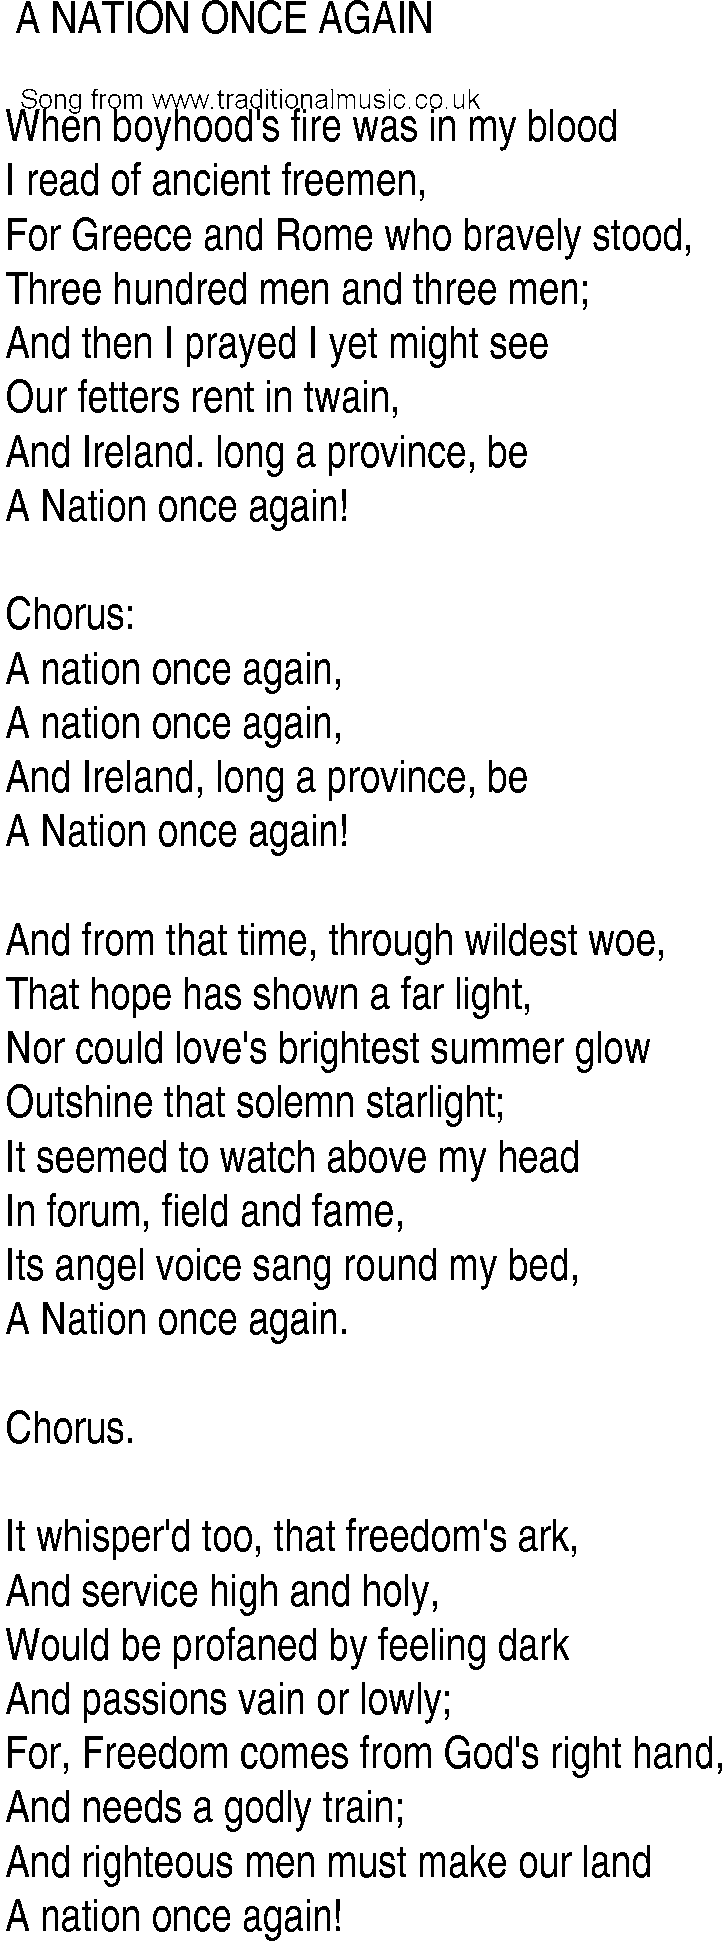 A Nation Once Again - The Dubliners - With Lyrics - YouTube